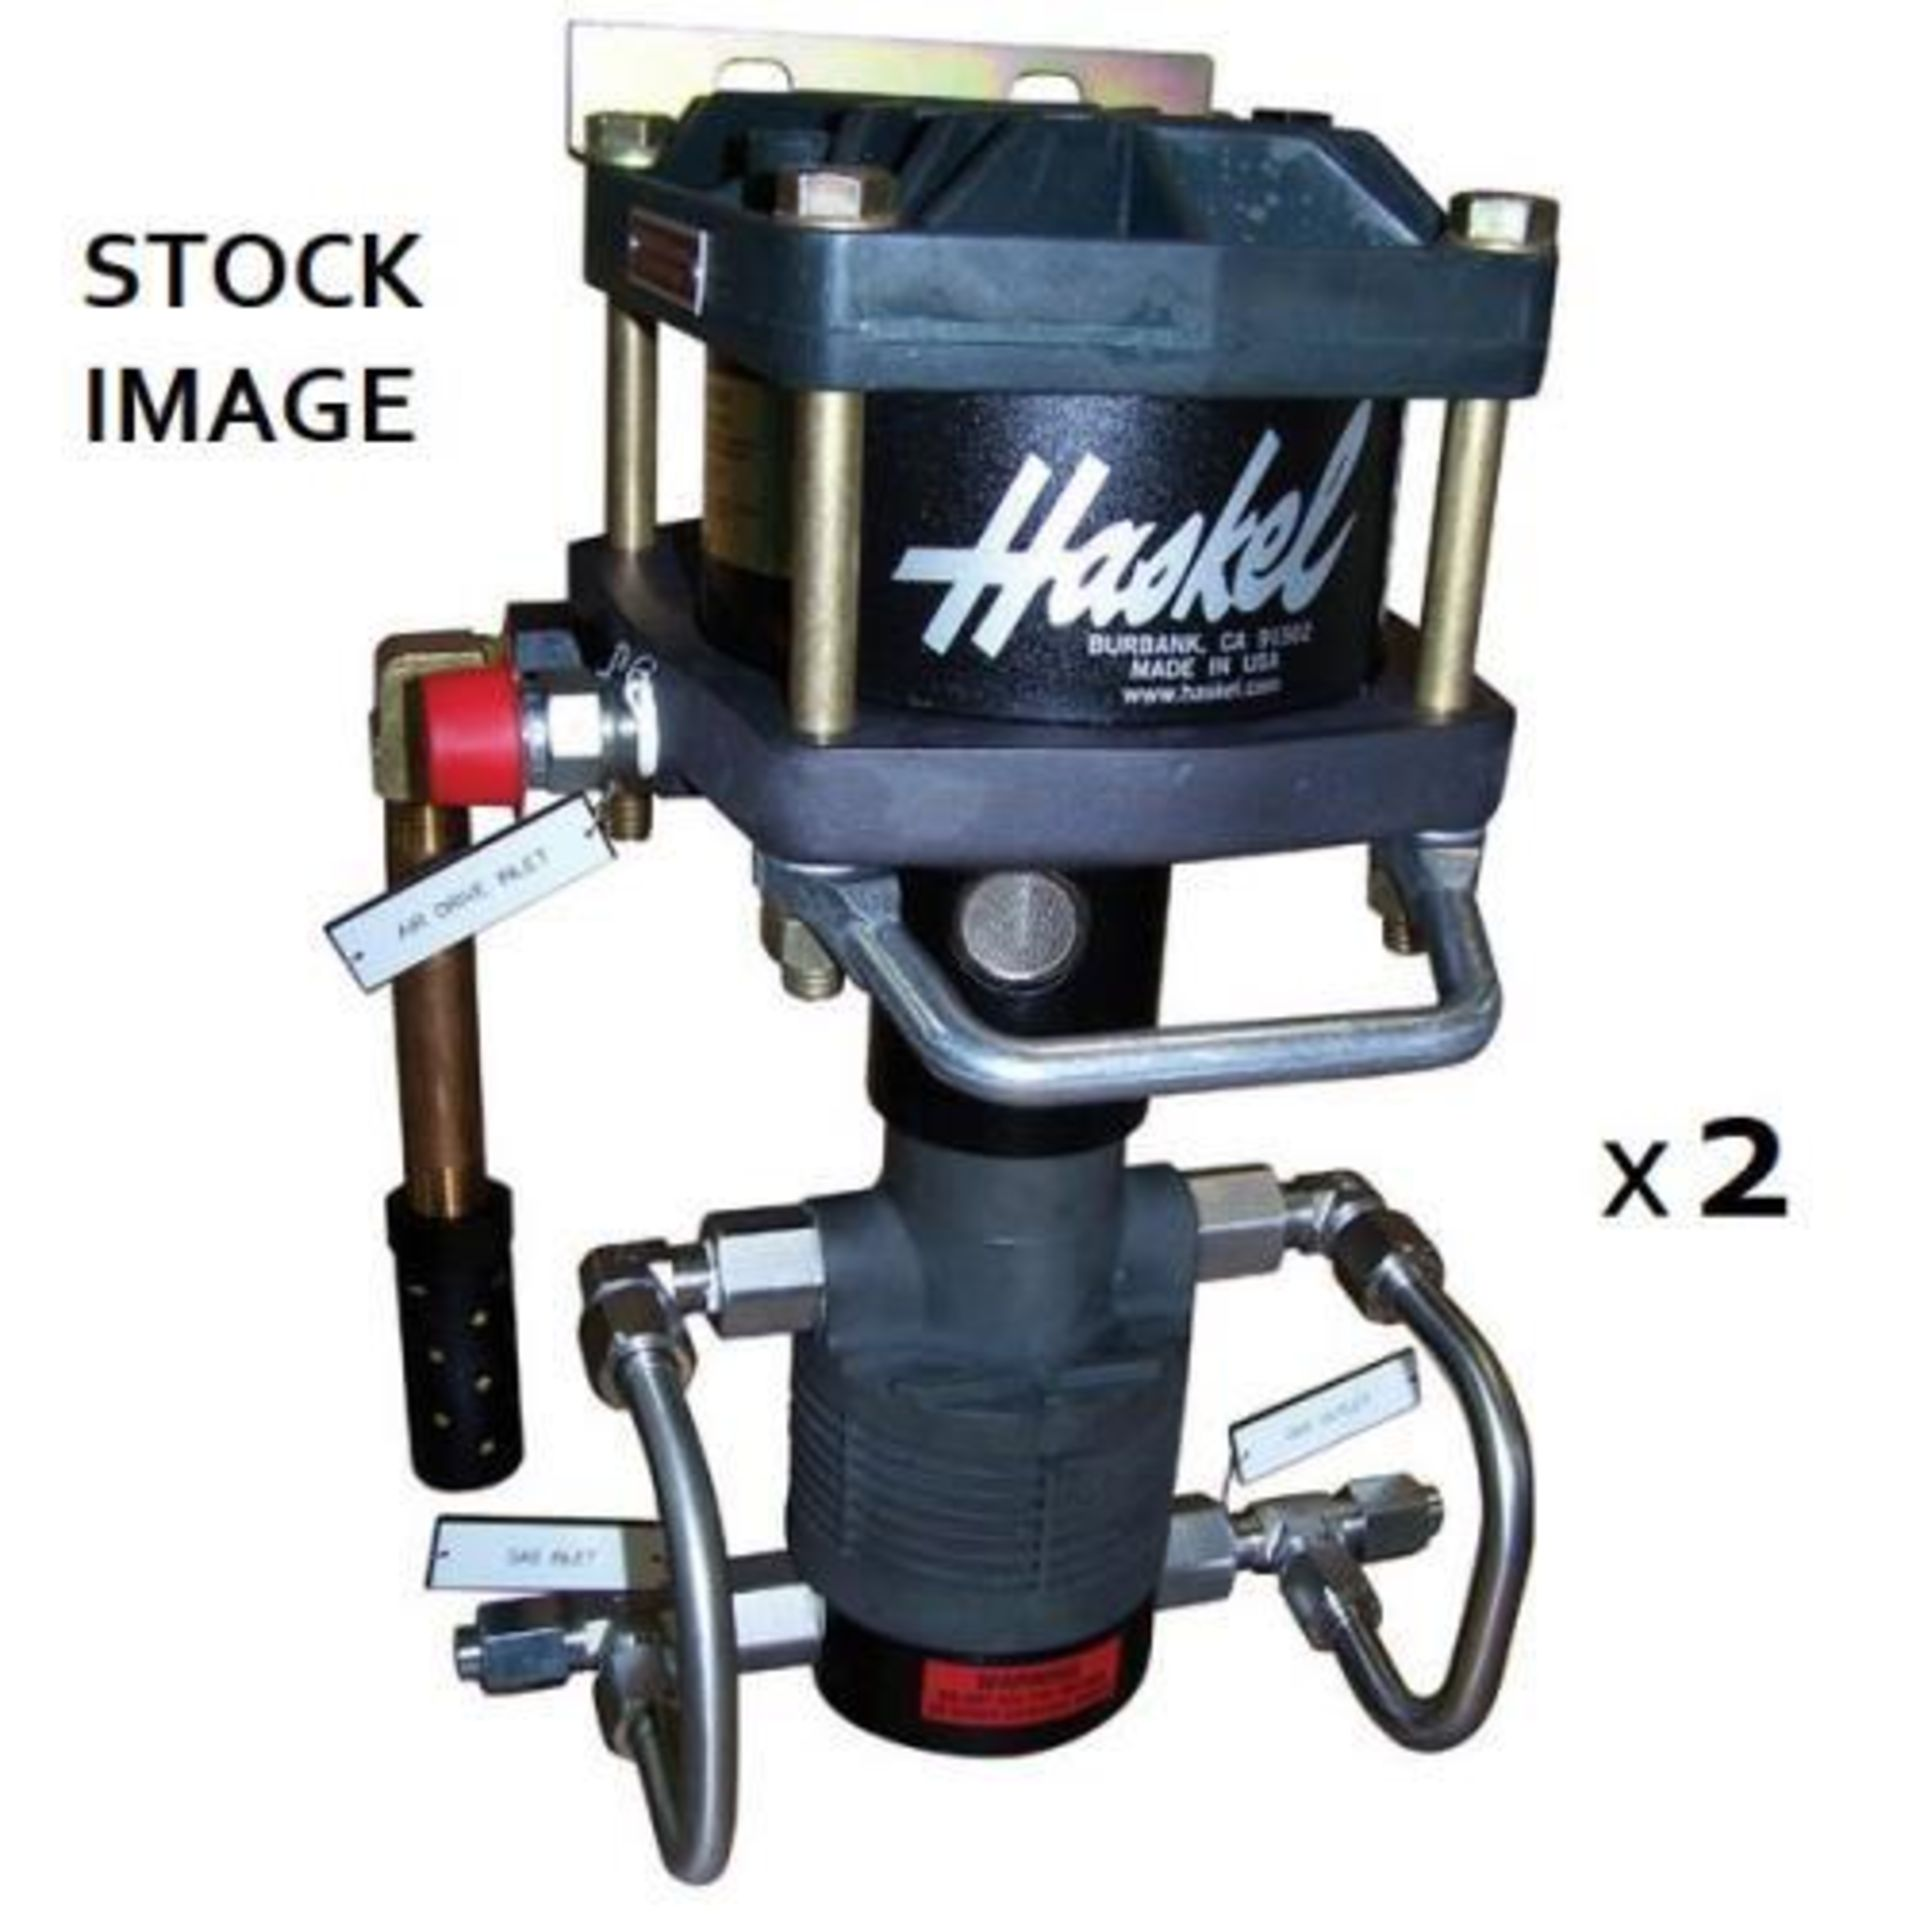 Used-Lot of (2) Haskel EXT420 Butane/Propane Extraction High Pressure Positive Displacement Pumps - Image 6 of 6